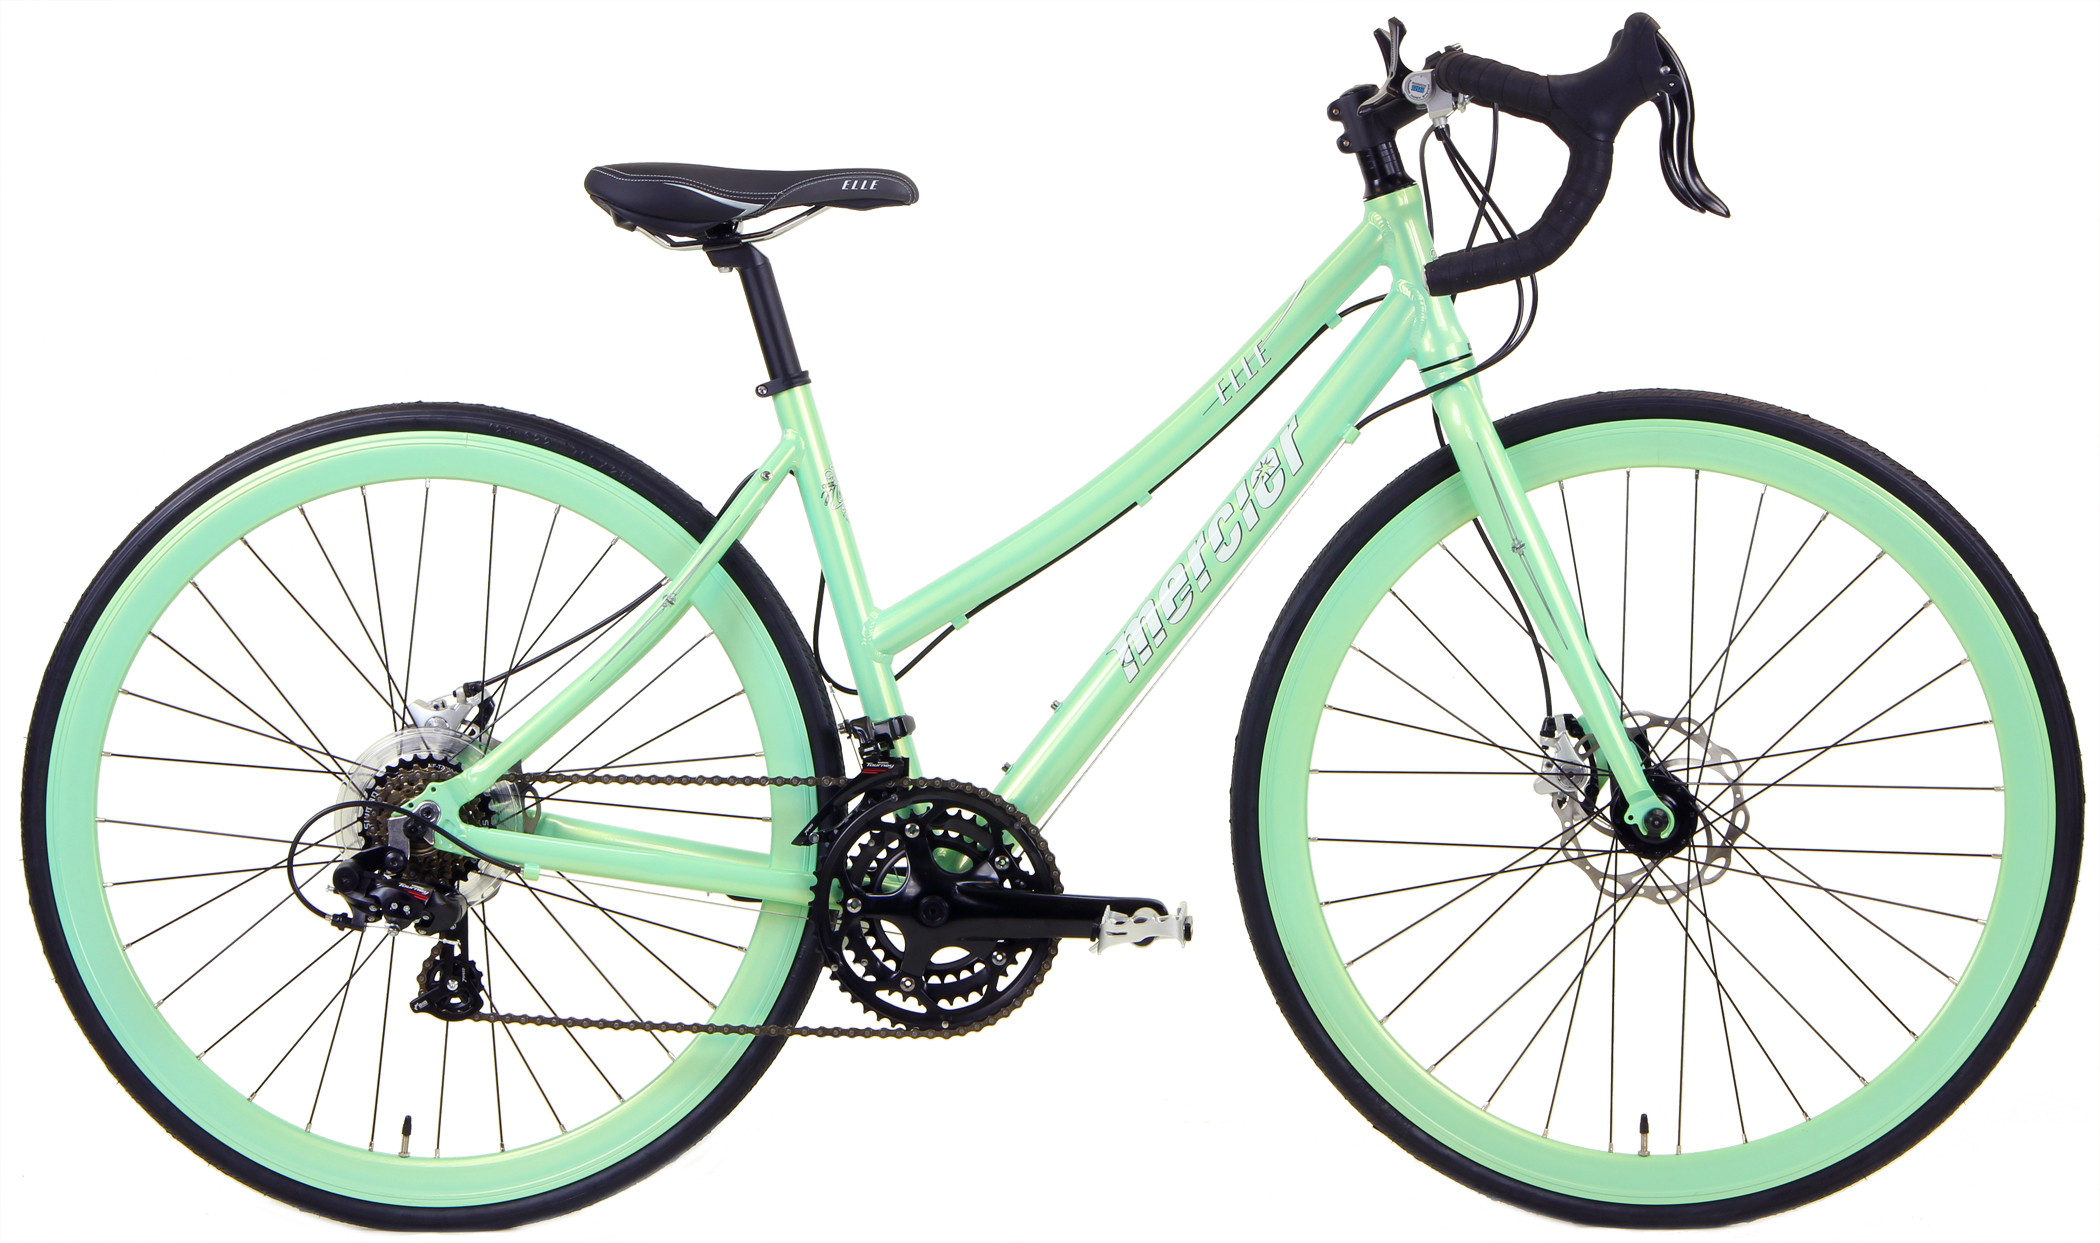 Bikes Mercier Elle Disc Elite Women's Specific Disc Brake Road Bike Image